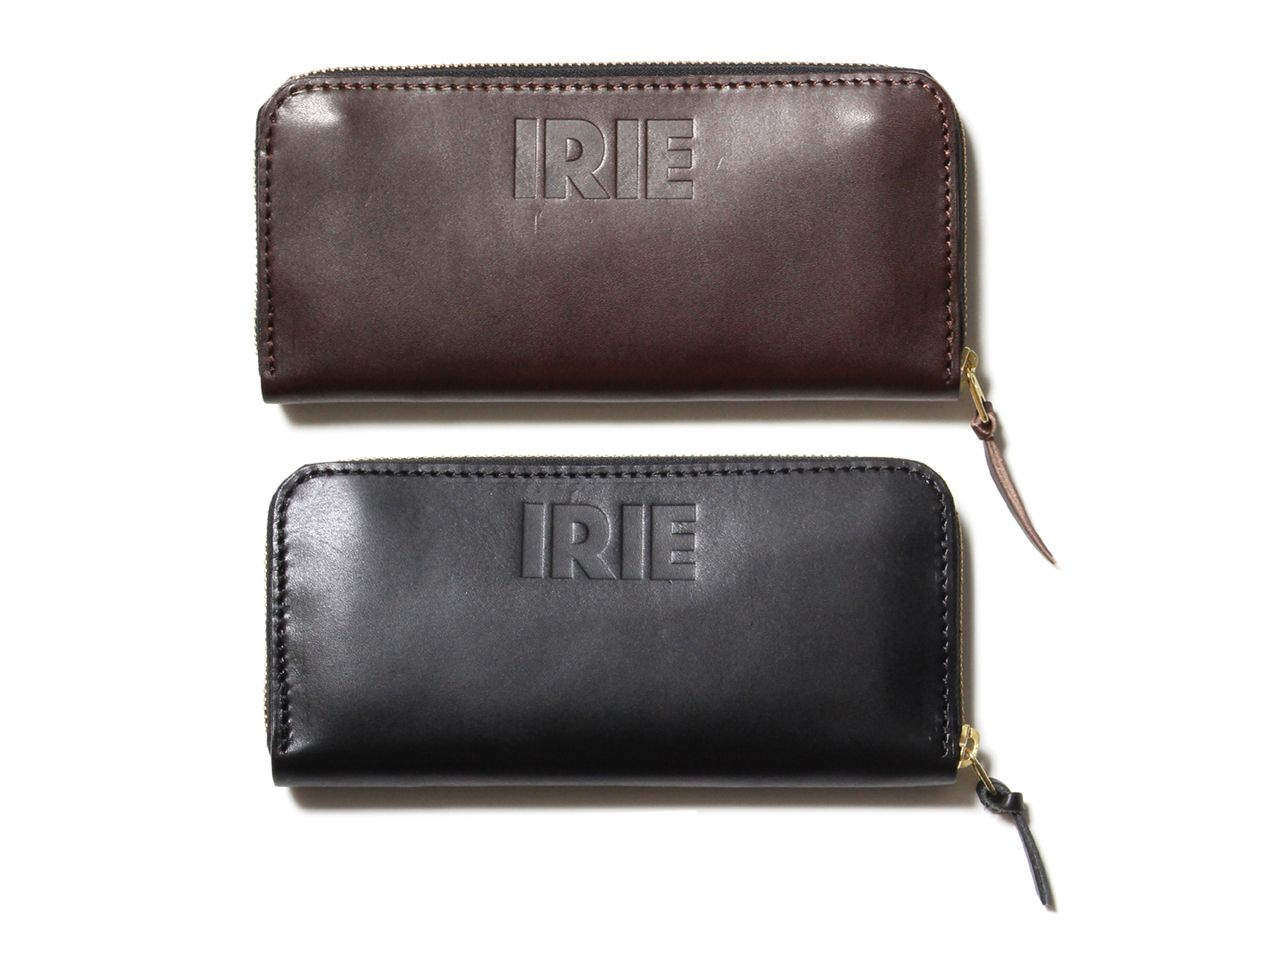 IRIE LEATHER LONG WALLET -IRIE by irielife- アイリー レザー ウォレット 財布